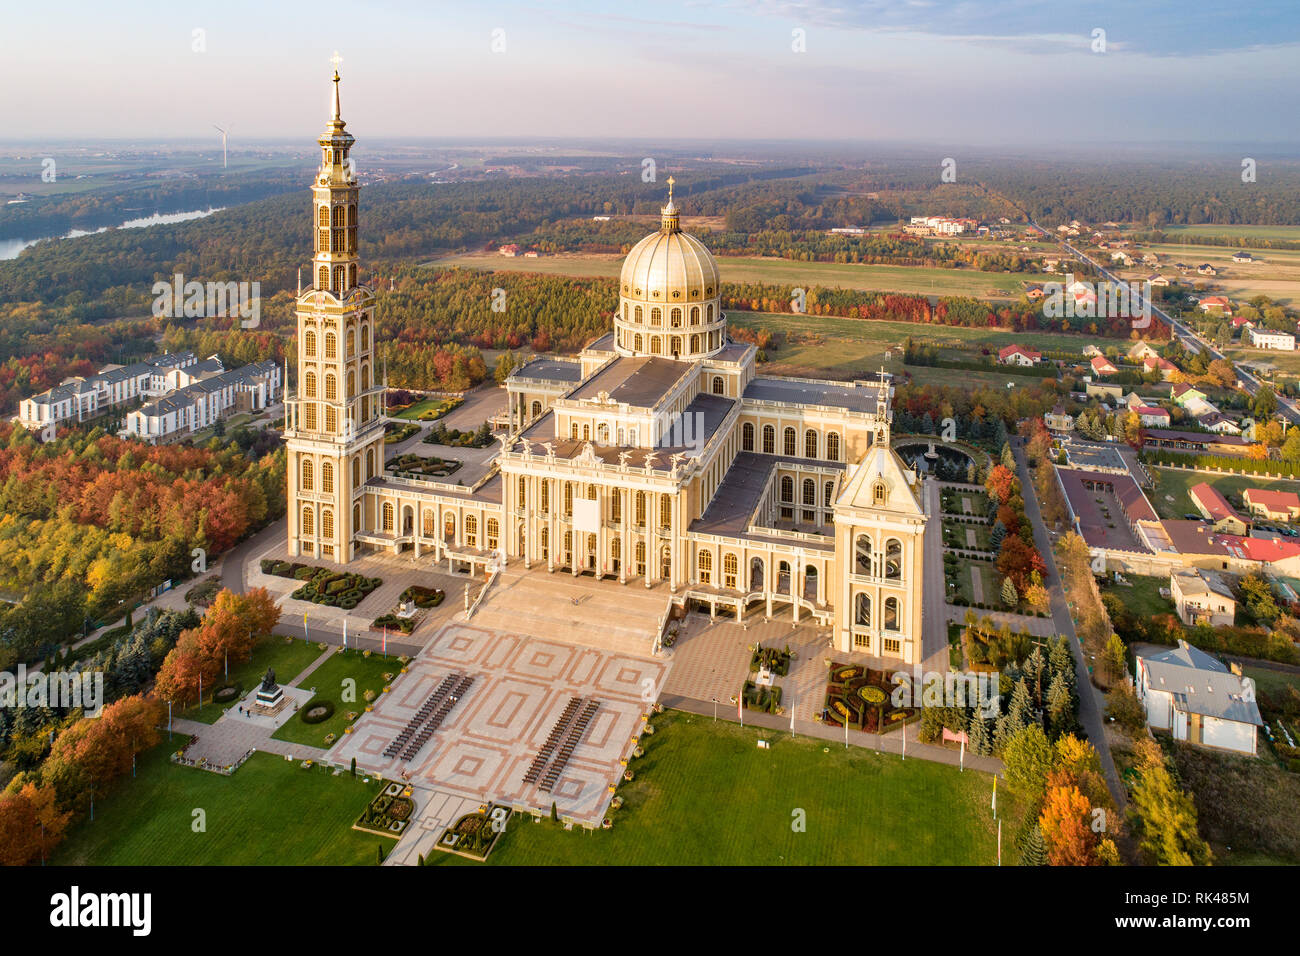 Sanctuary and Basilica of Our Lady of Licheń in small village Lichen. The biggest church in Poland, one of the largest in the World. - Stock Image